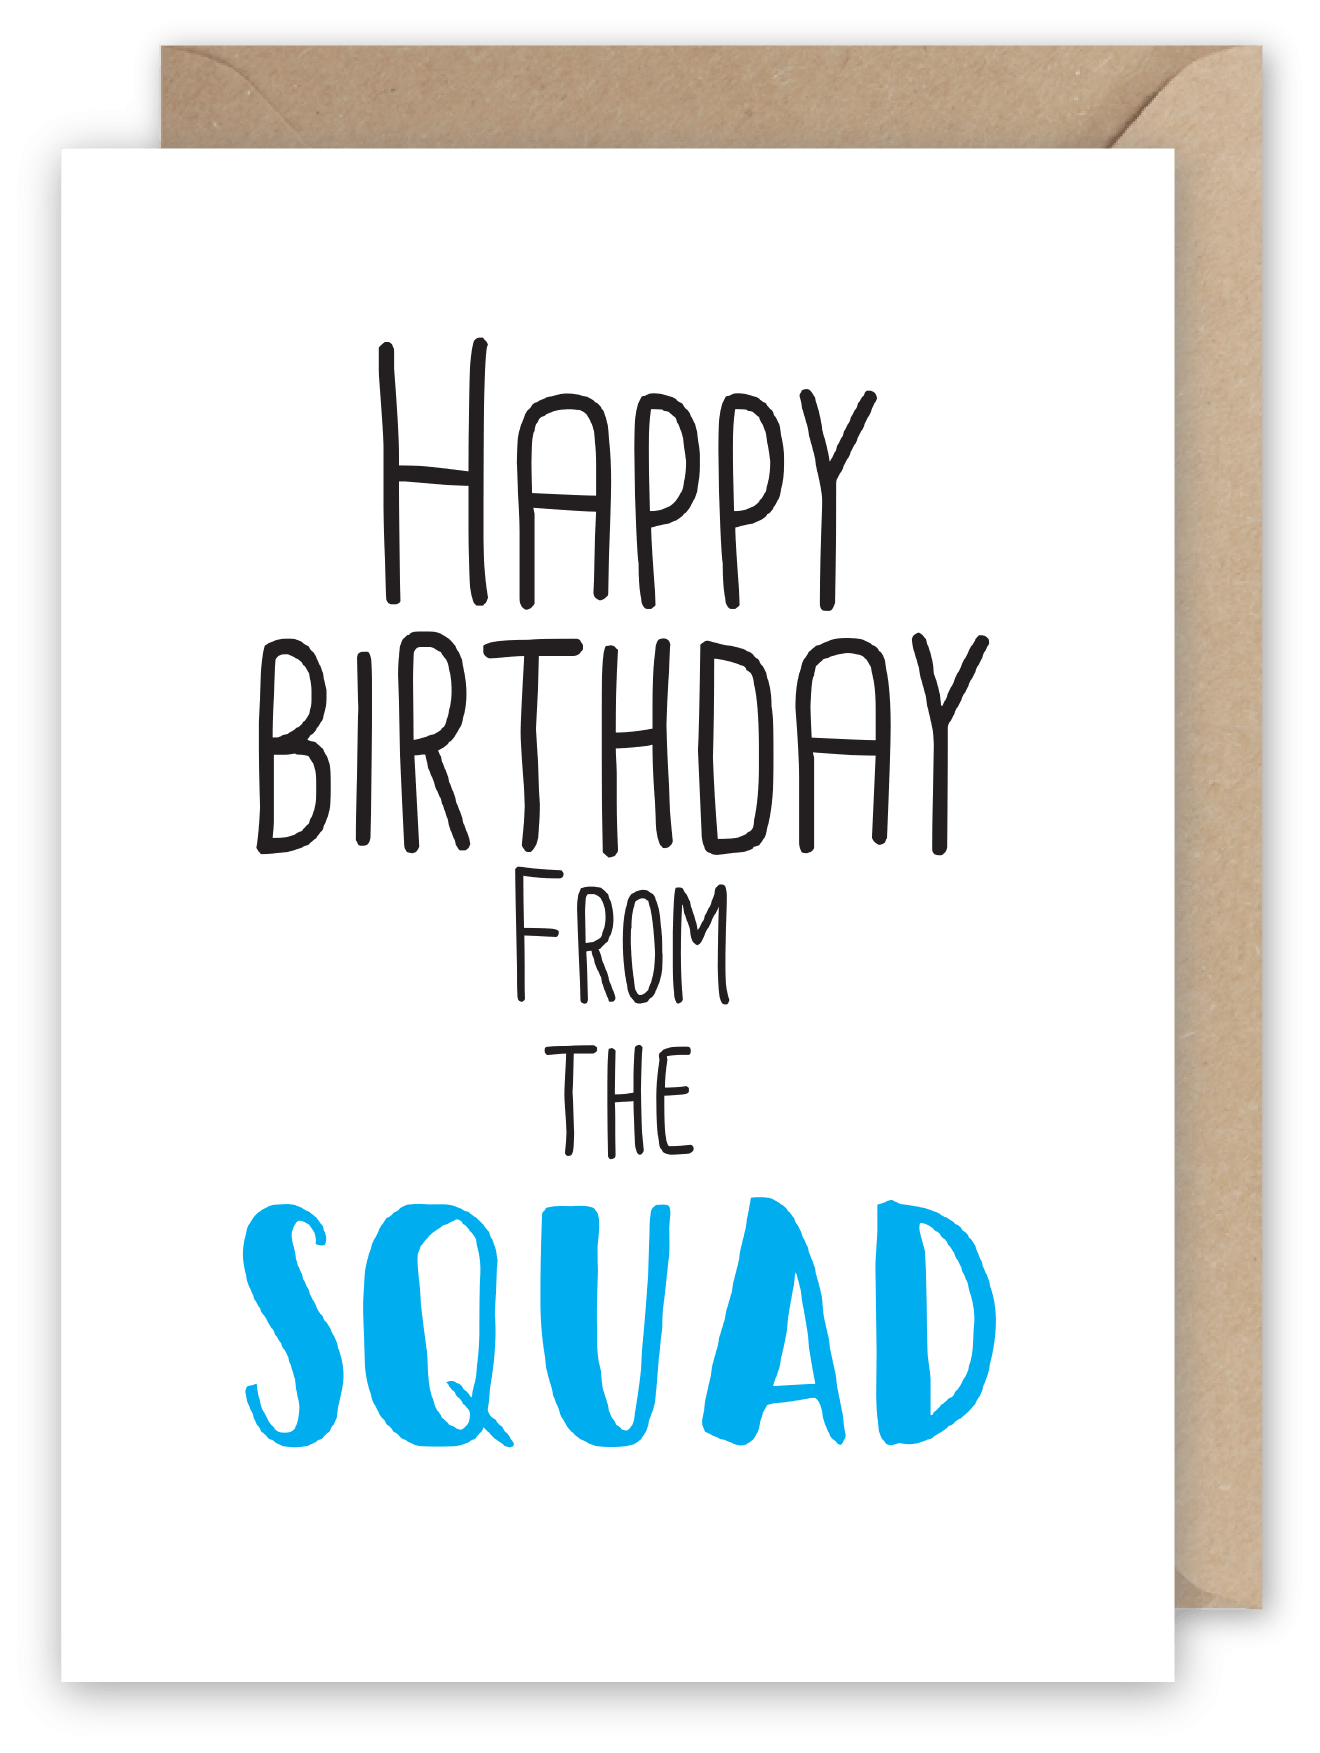 Happy Birthday from the Squad - Greeting Card from Pheasant Plucker